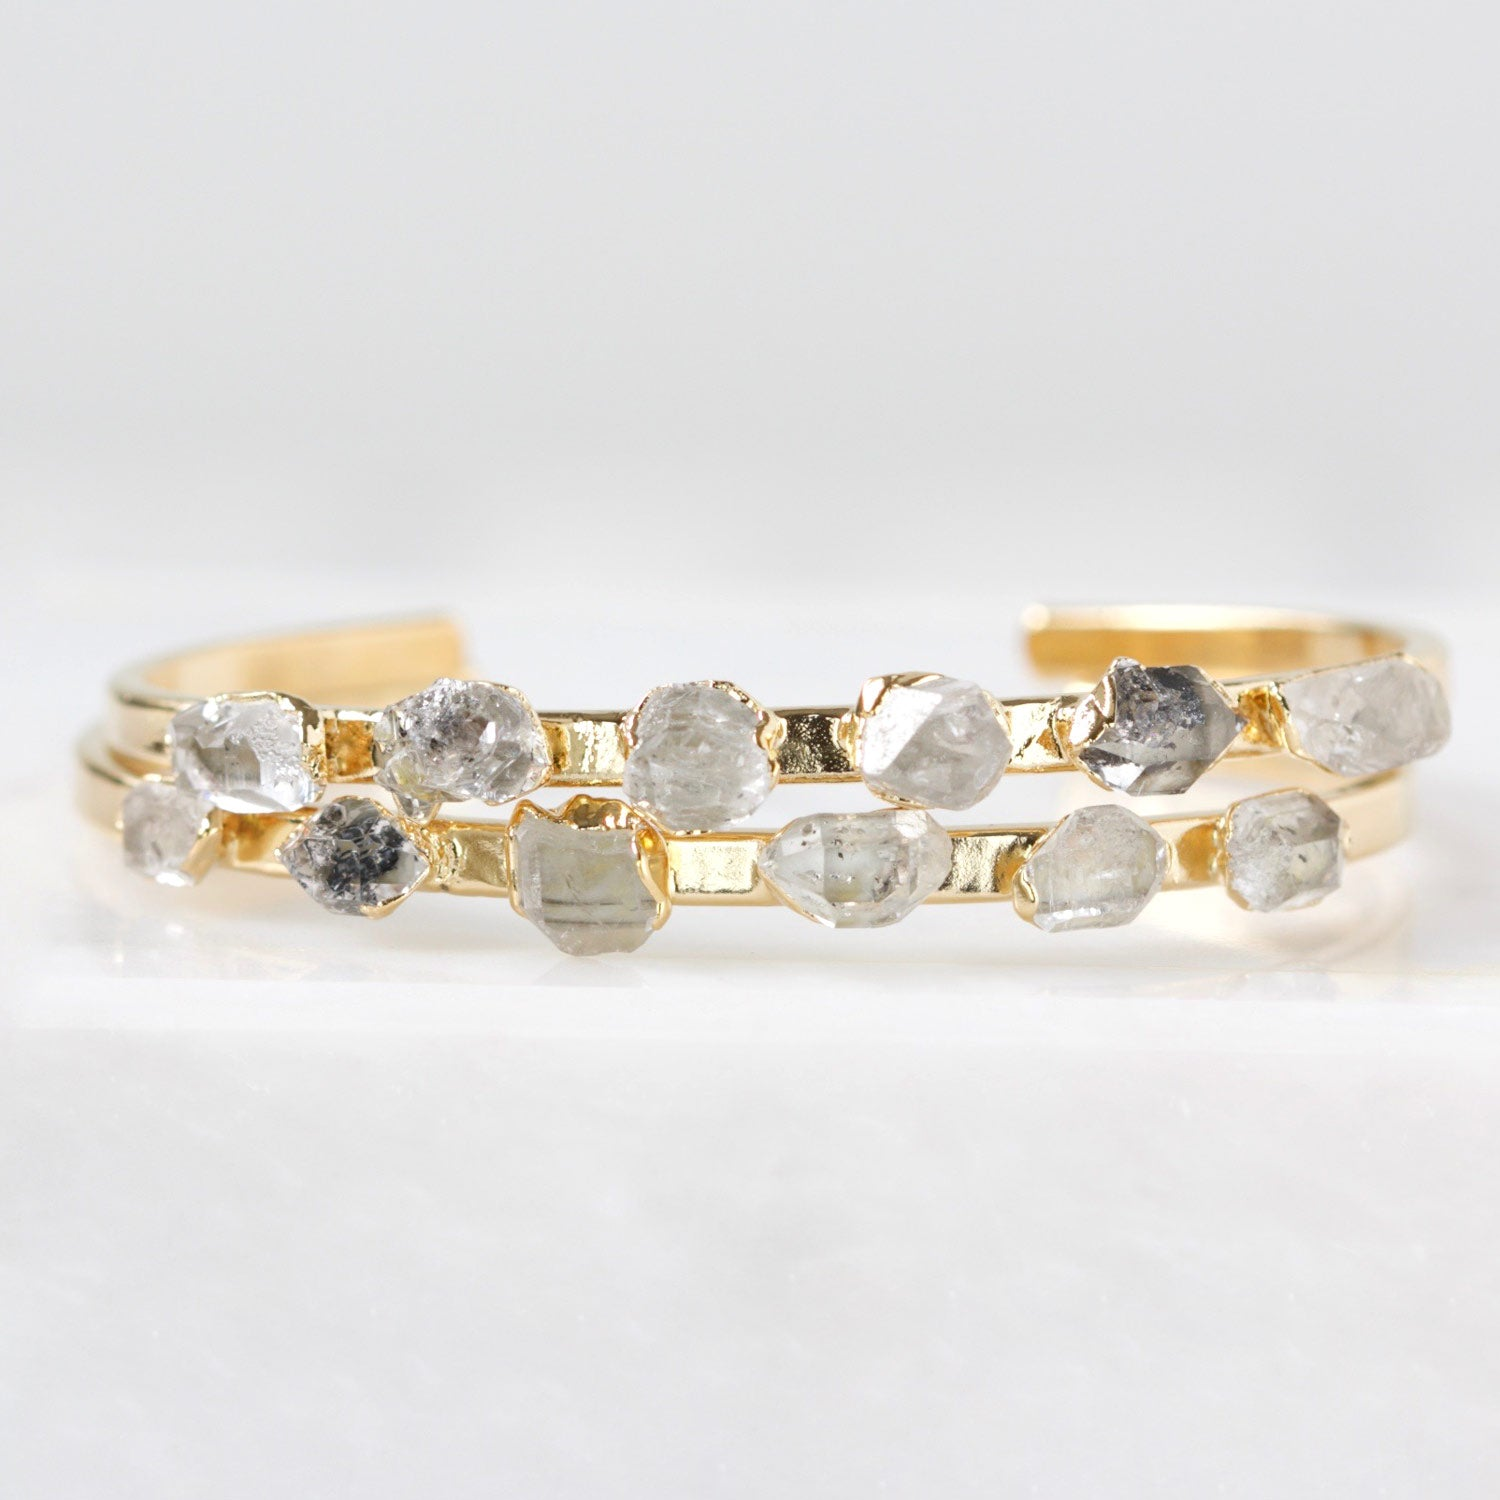 Herkimer Diamond Cuff Holiday Gift for Best Friend